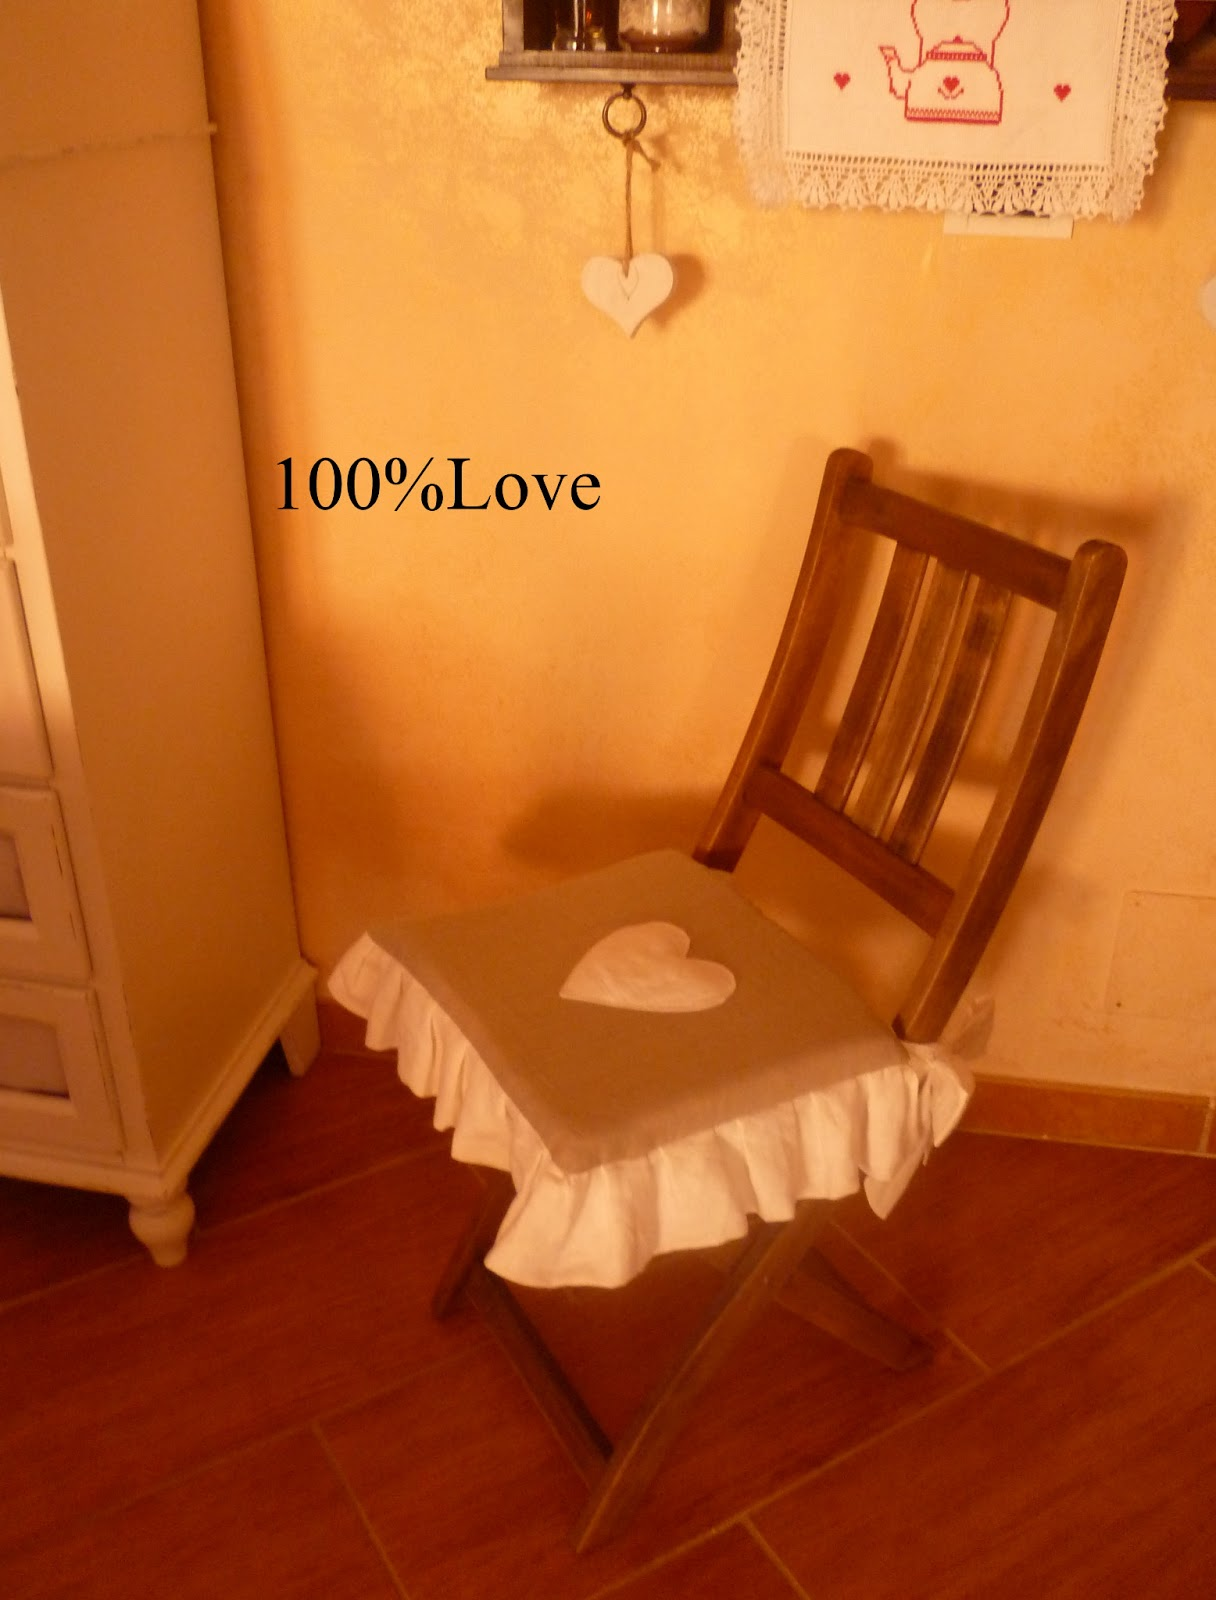 100%LOVE: Cuscino sedia Country